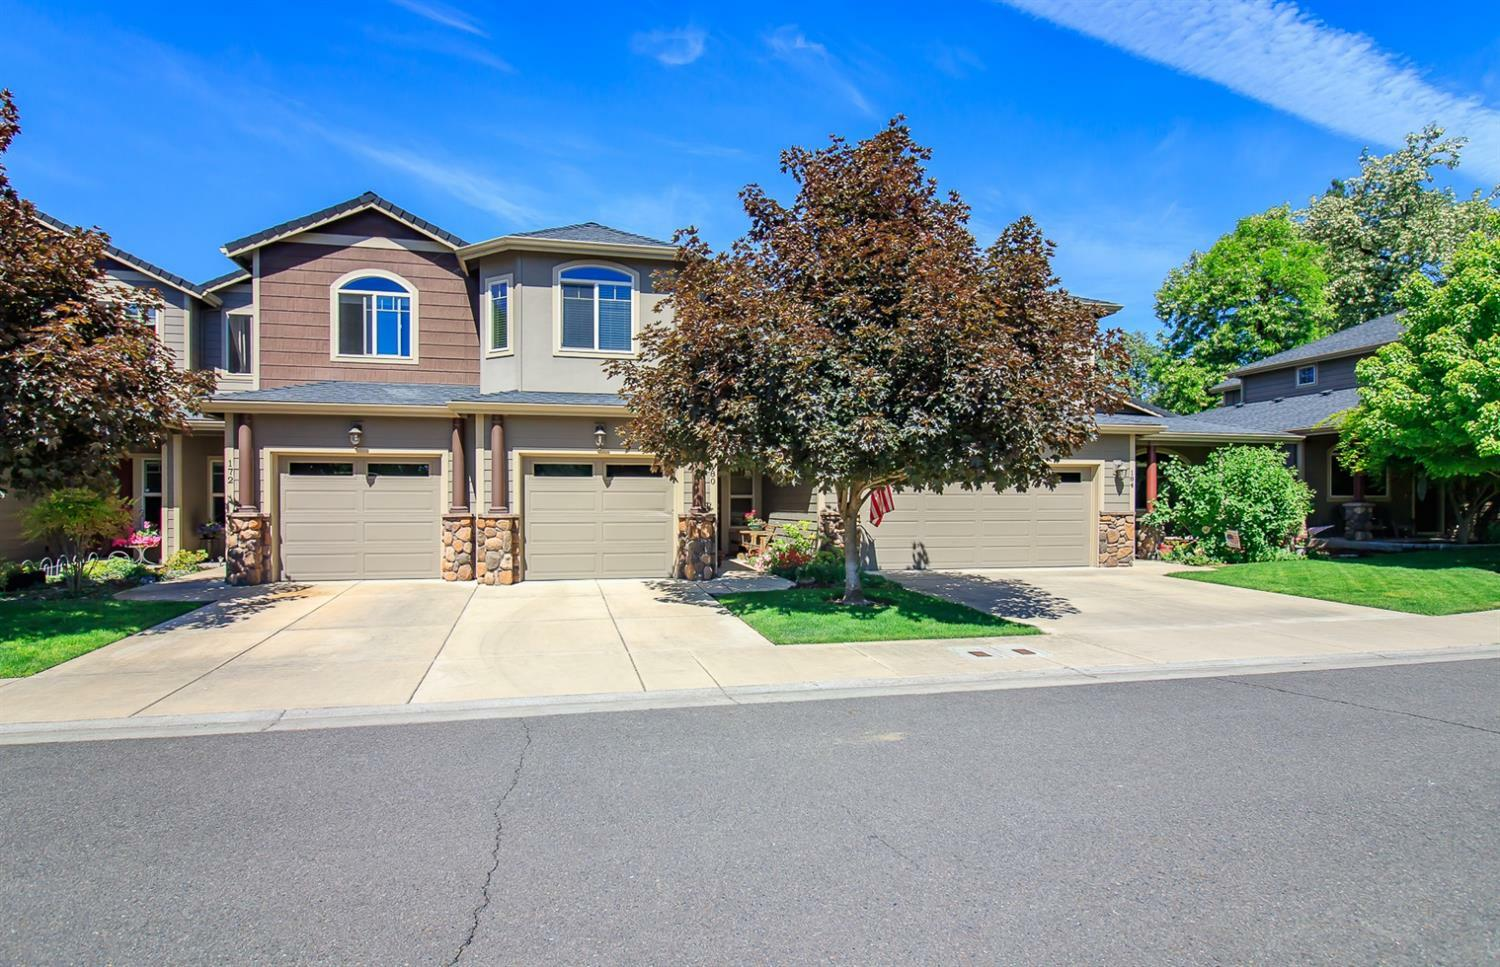 180 Rivers Edge Drive, Gold Hill, OR - USA (photo 1)